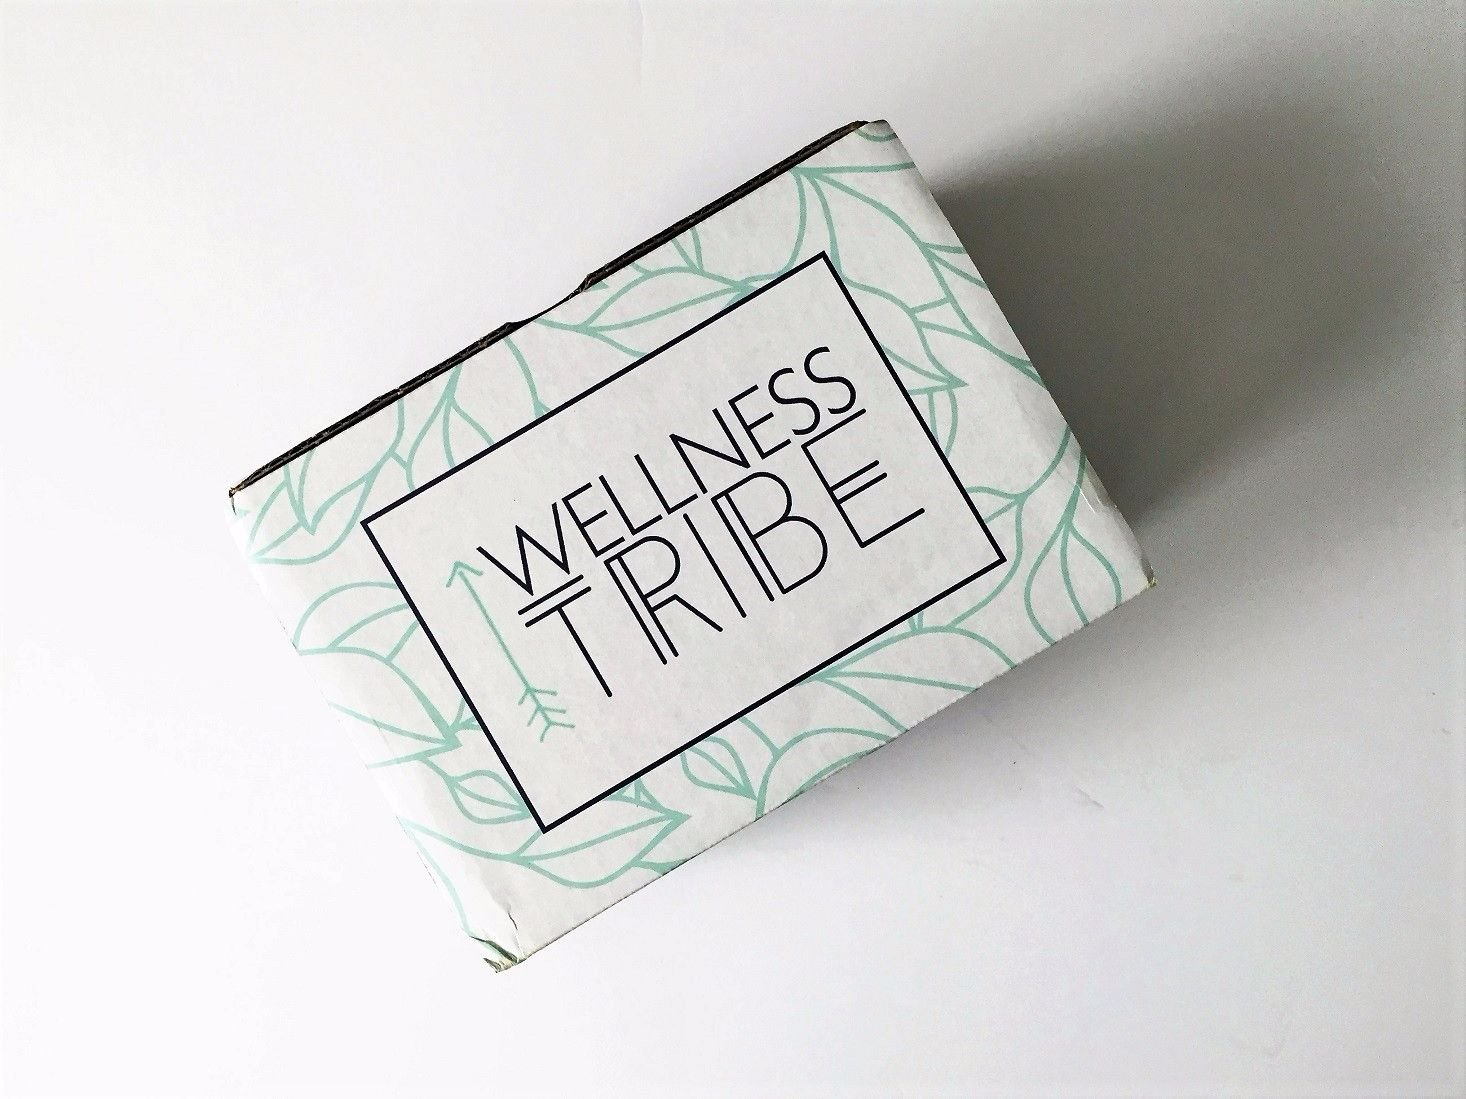 WELLNESS-TRIBE-April -2017-01closedbox.jpg